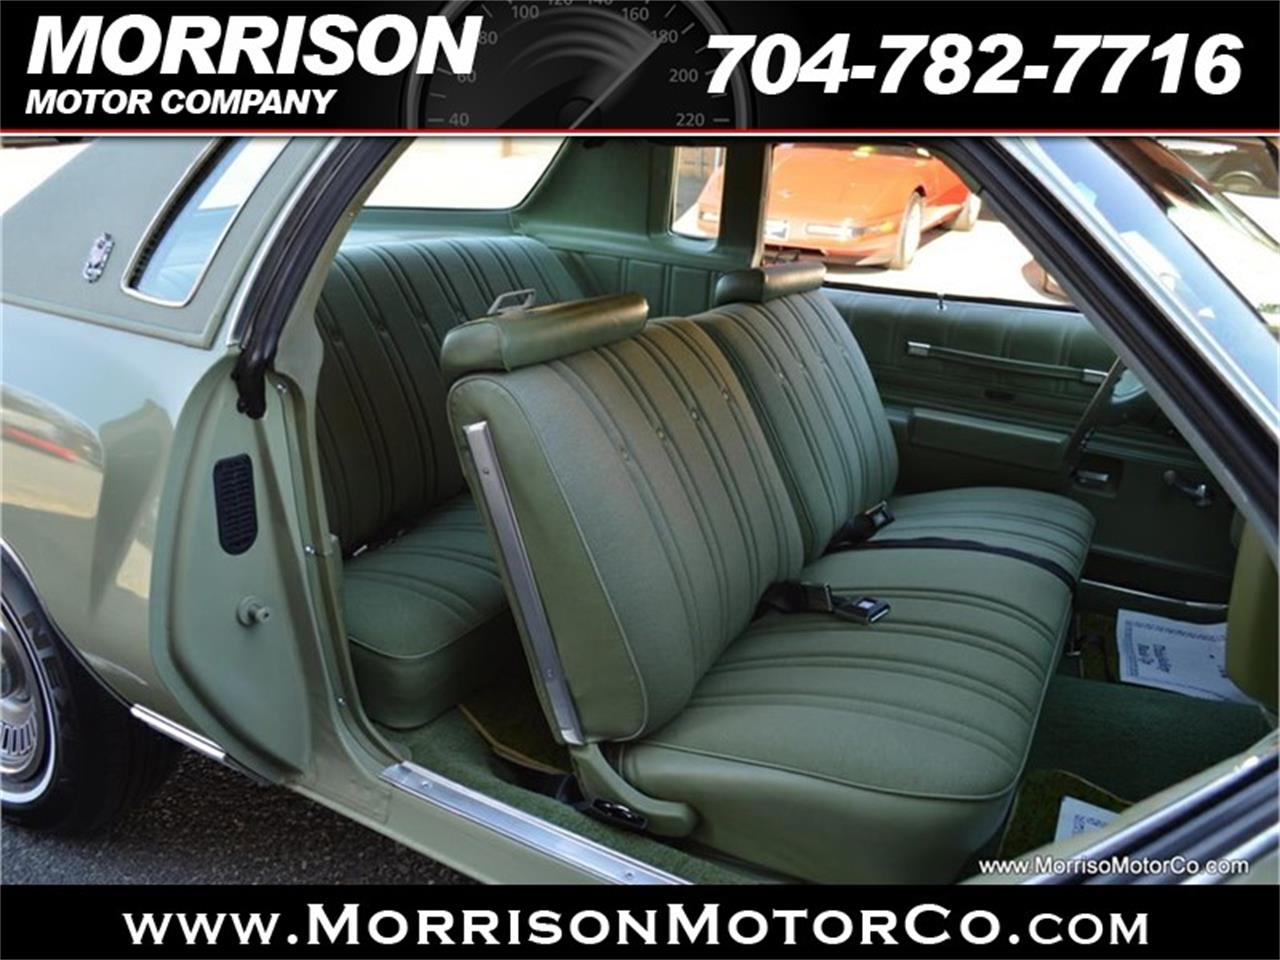 Large Picture of 1974 Chevrolet Monte Carlo located in Concord North Carolina - $19,900.00 - PEZN